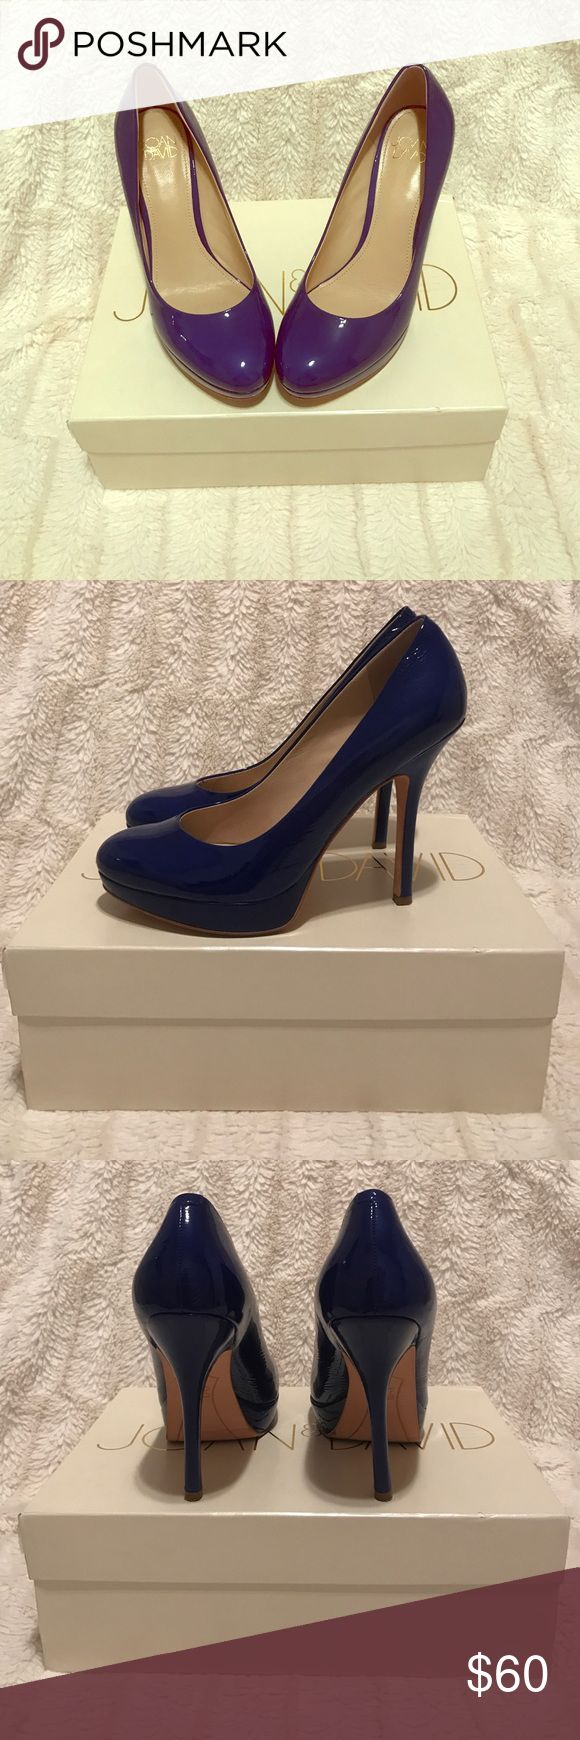 Joan & David Blue Patent Heels Beautiful Blue Pumps by Joan & David. Worn a few times, but in great condition. Heel is about 3.5 inches but has platform which makes easier to walk in. Joan & David Shoes Heels